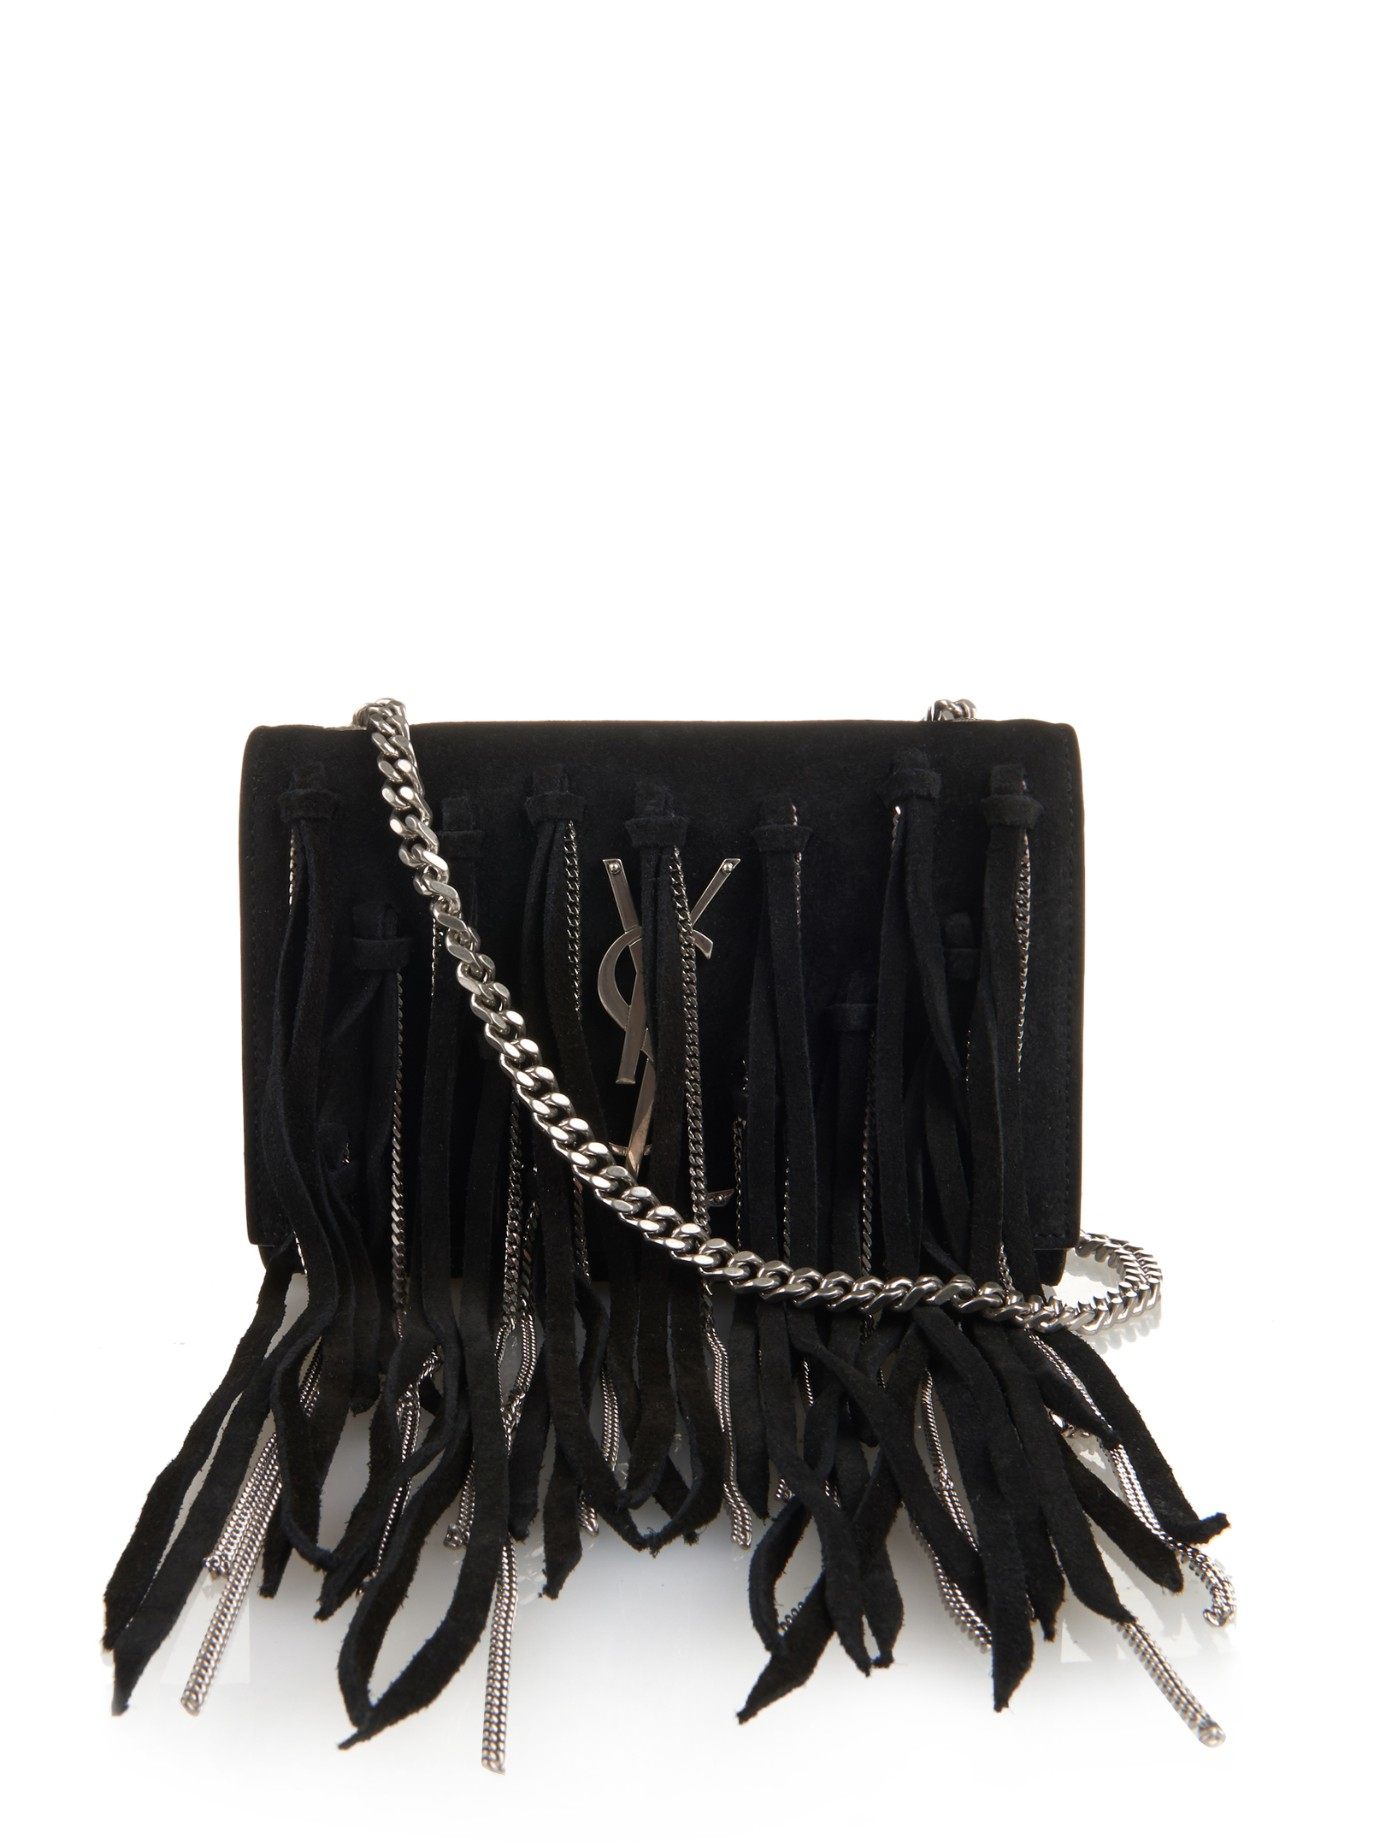 d43df86077 Lyst - Saint Laurent Monogram Small Fringed-suede Cross-body Bag in ...